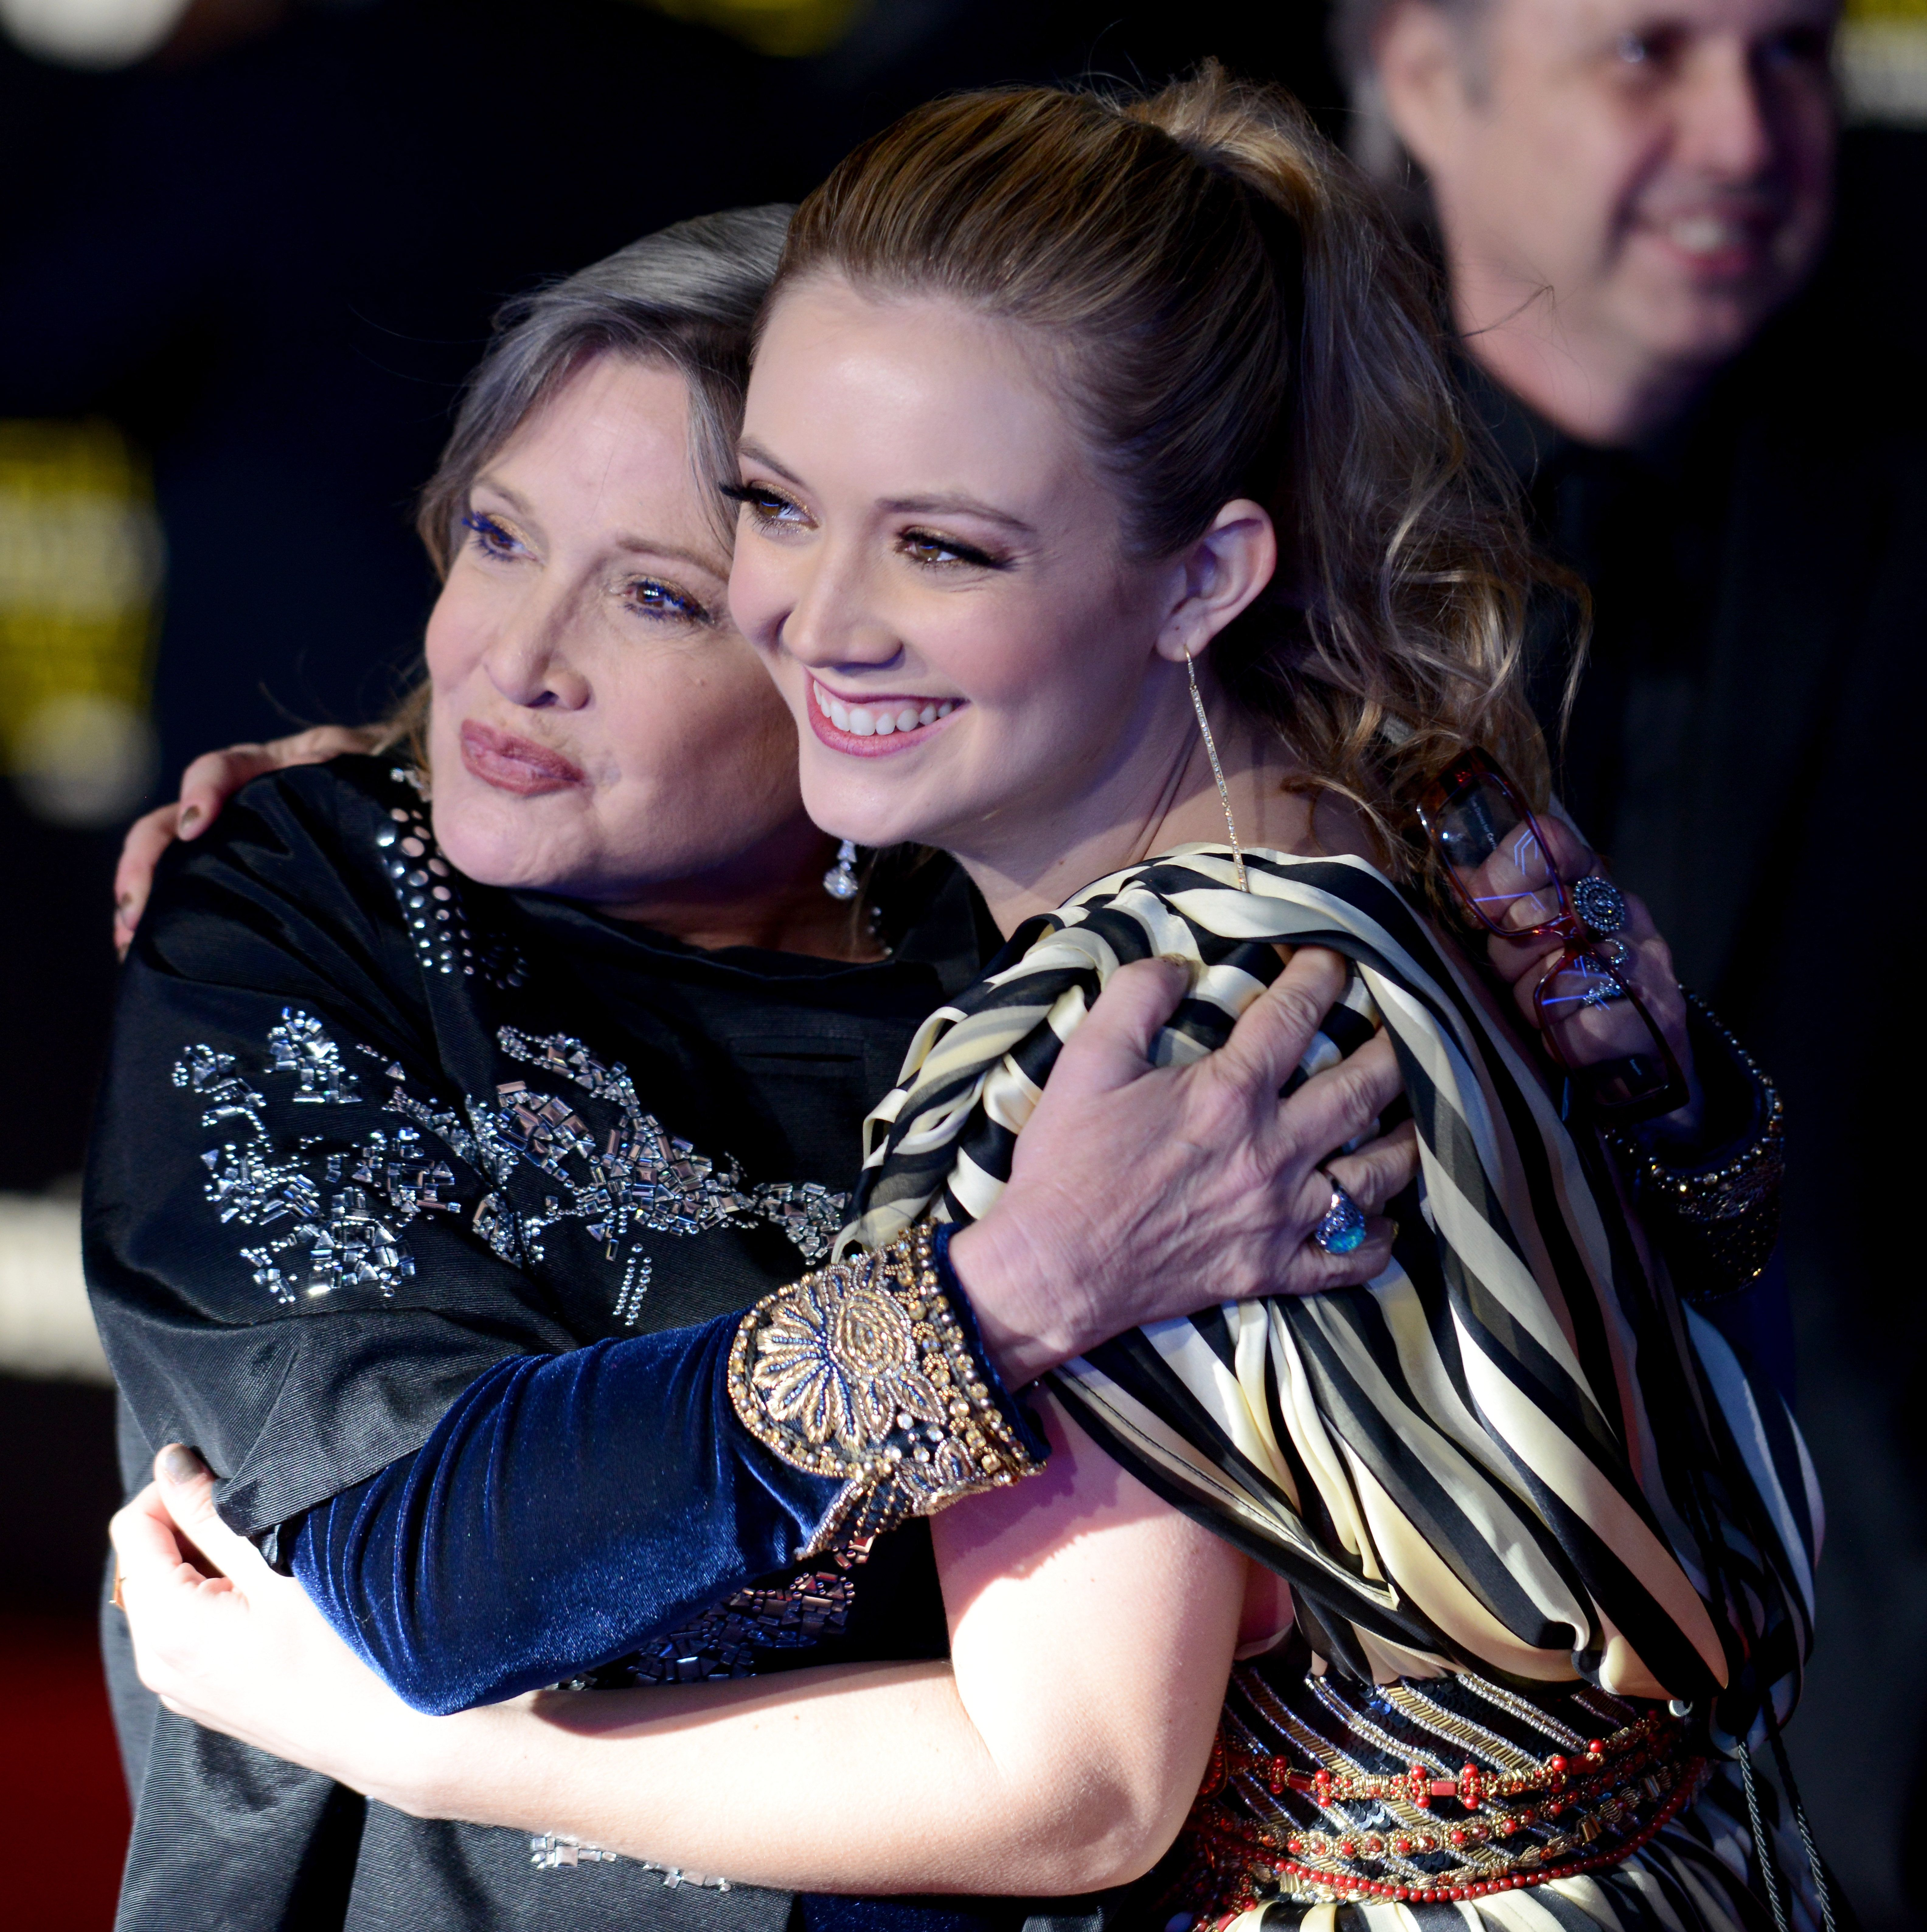 HOLLYWOOD, CA - DECEMBER 14:  Actress Carrie Fisher and daughter/actress Billie Lourd arrive for the Premiere Of Walt Disney Pictures And Lucasfilm's 'Star Wars: The Force Awakens'  held on December 14, 2015 in Hollywood, California.  (Photo by Albert L. Ortega/Getty Images)